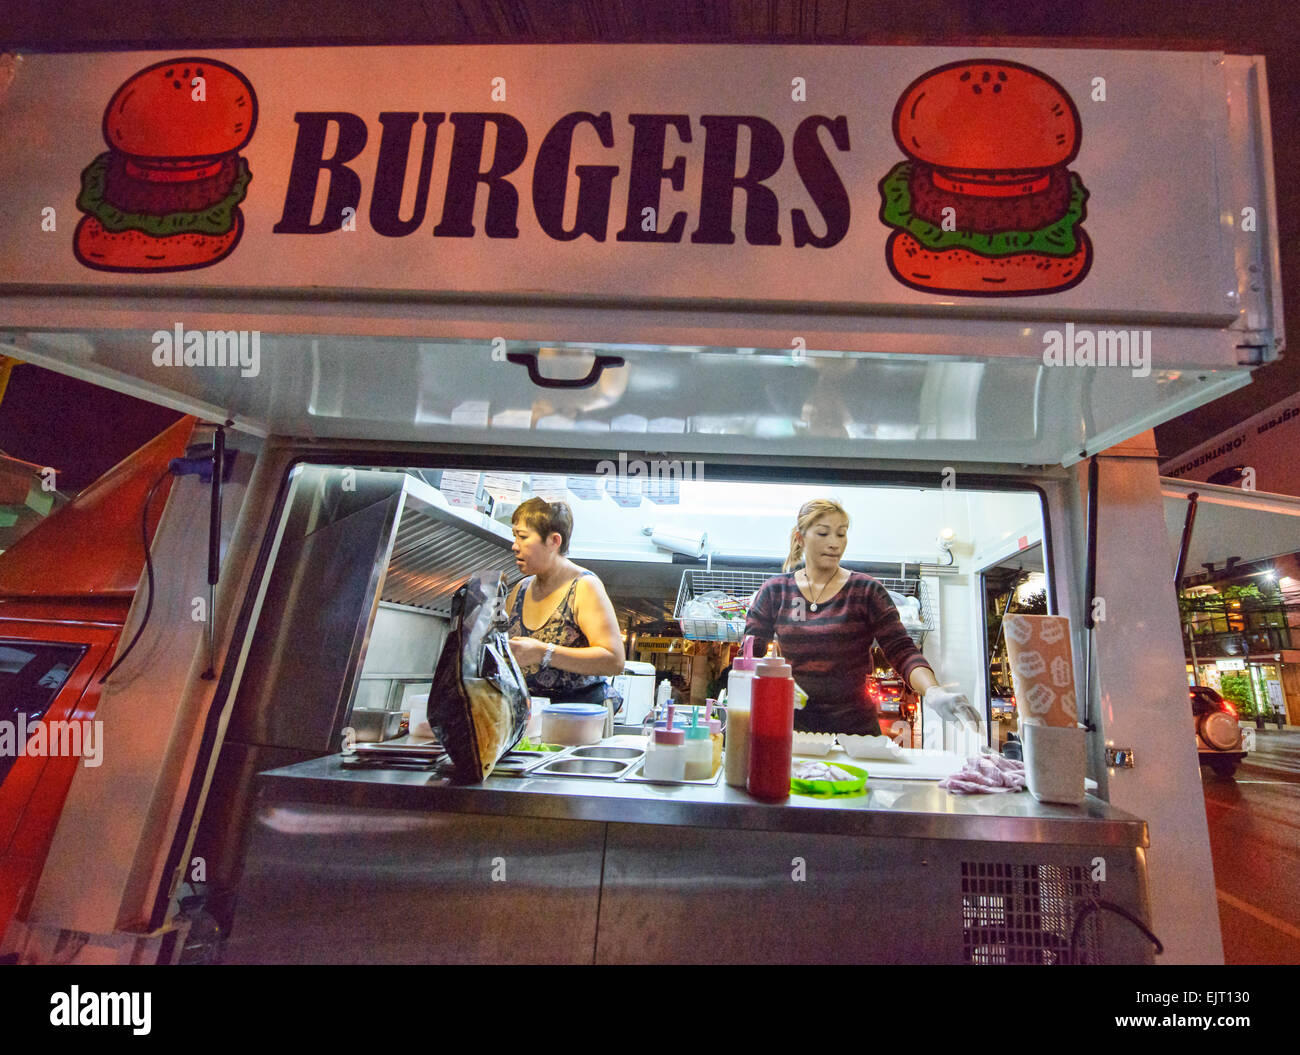 hamburger stall stock photos hamburger stall stock images alamy. Black Bedroom Furniture Sets. Home Design Ideas